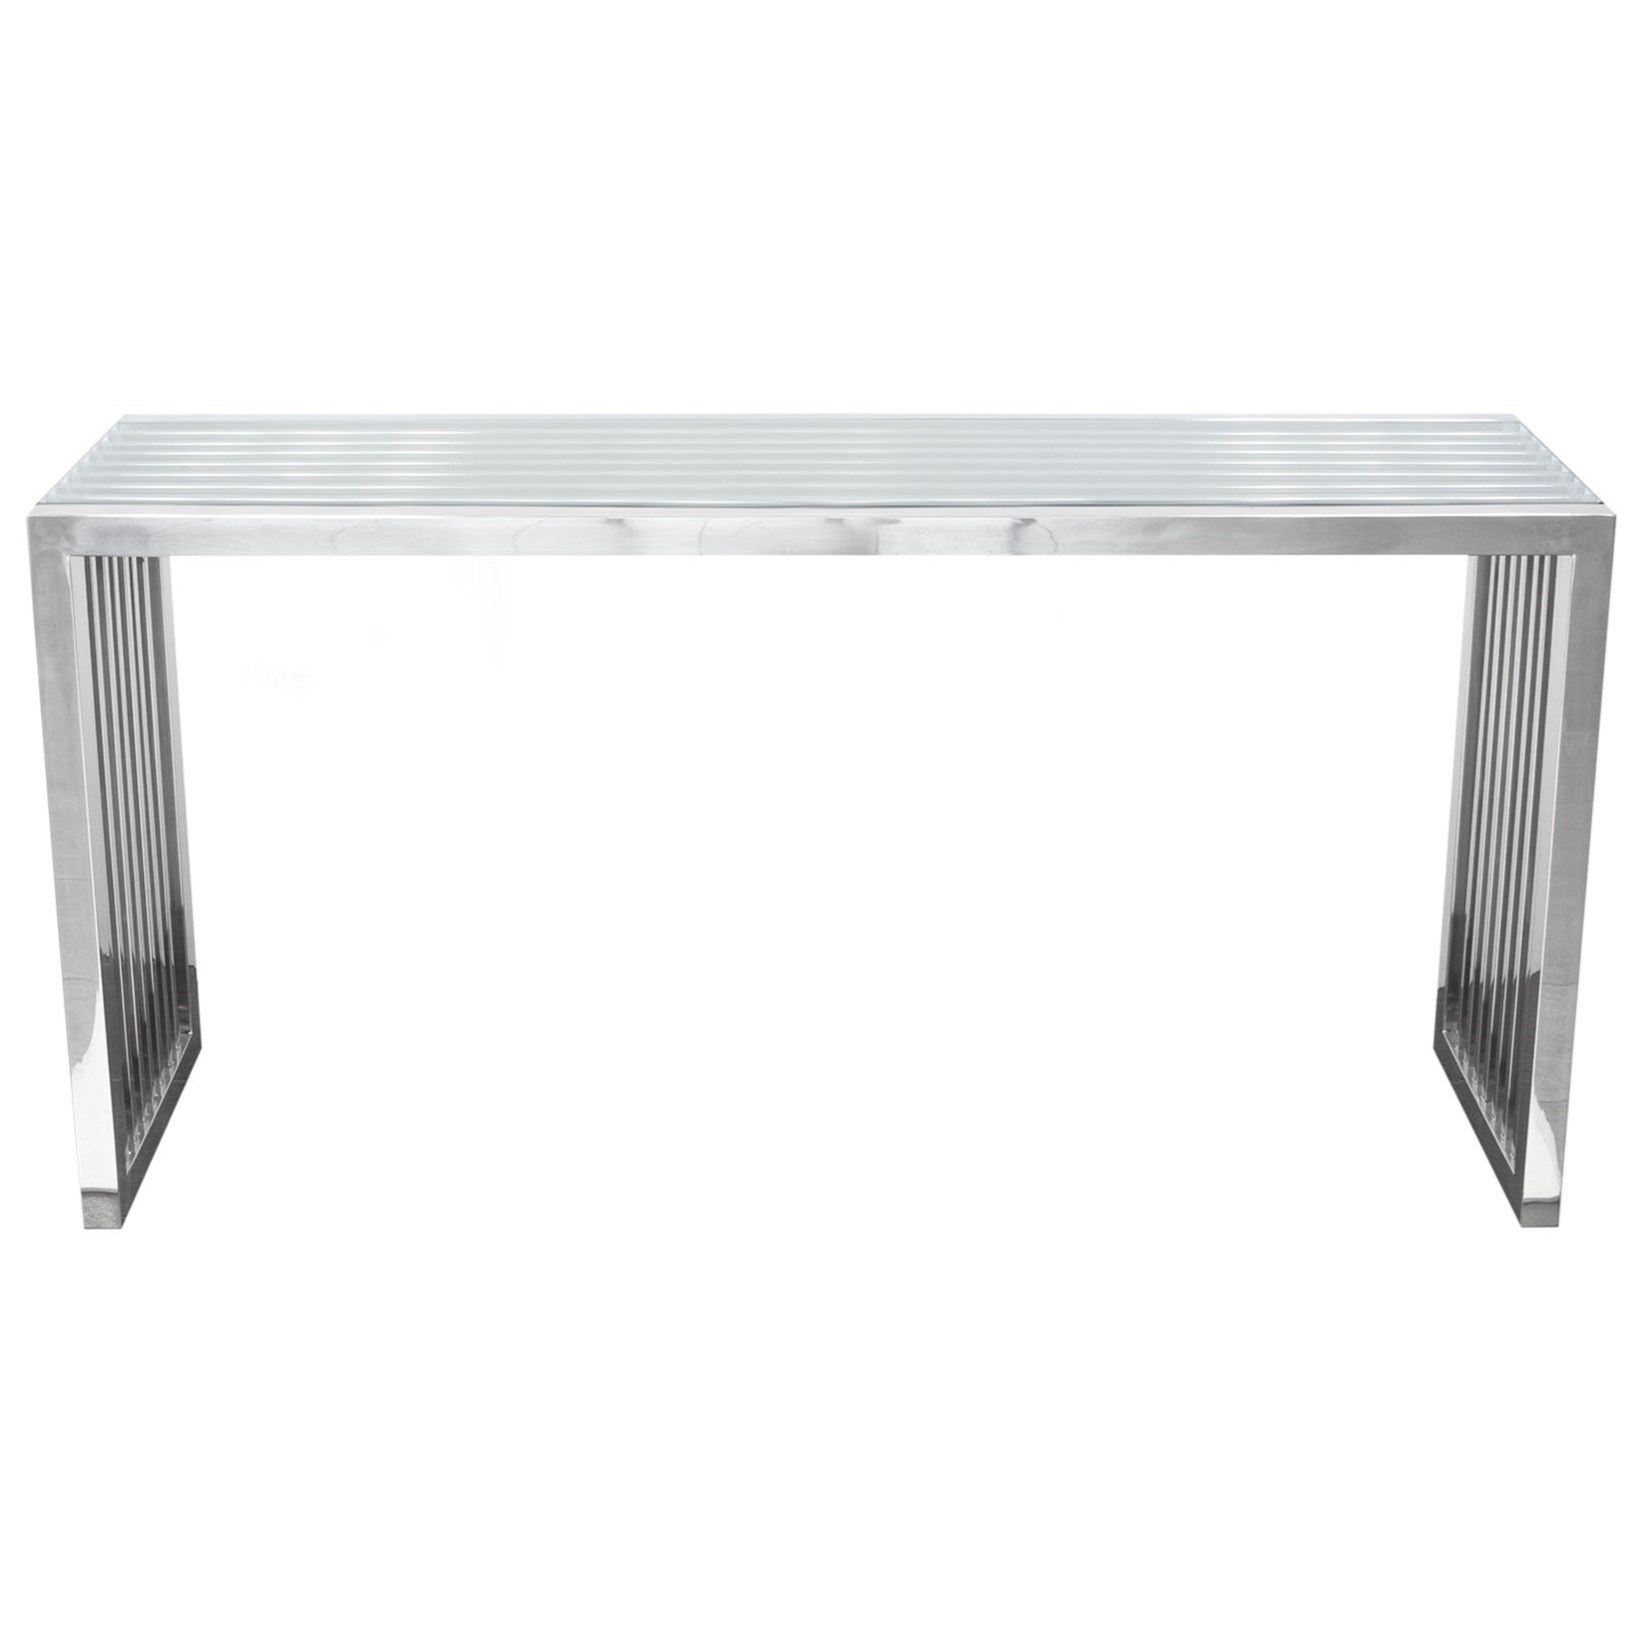 Soho Console Table by Diamond Sofa at Red Knot